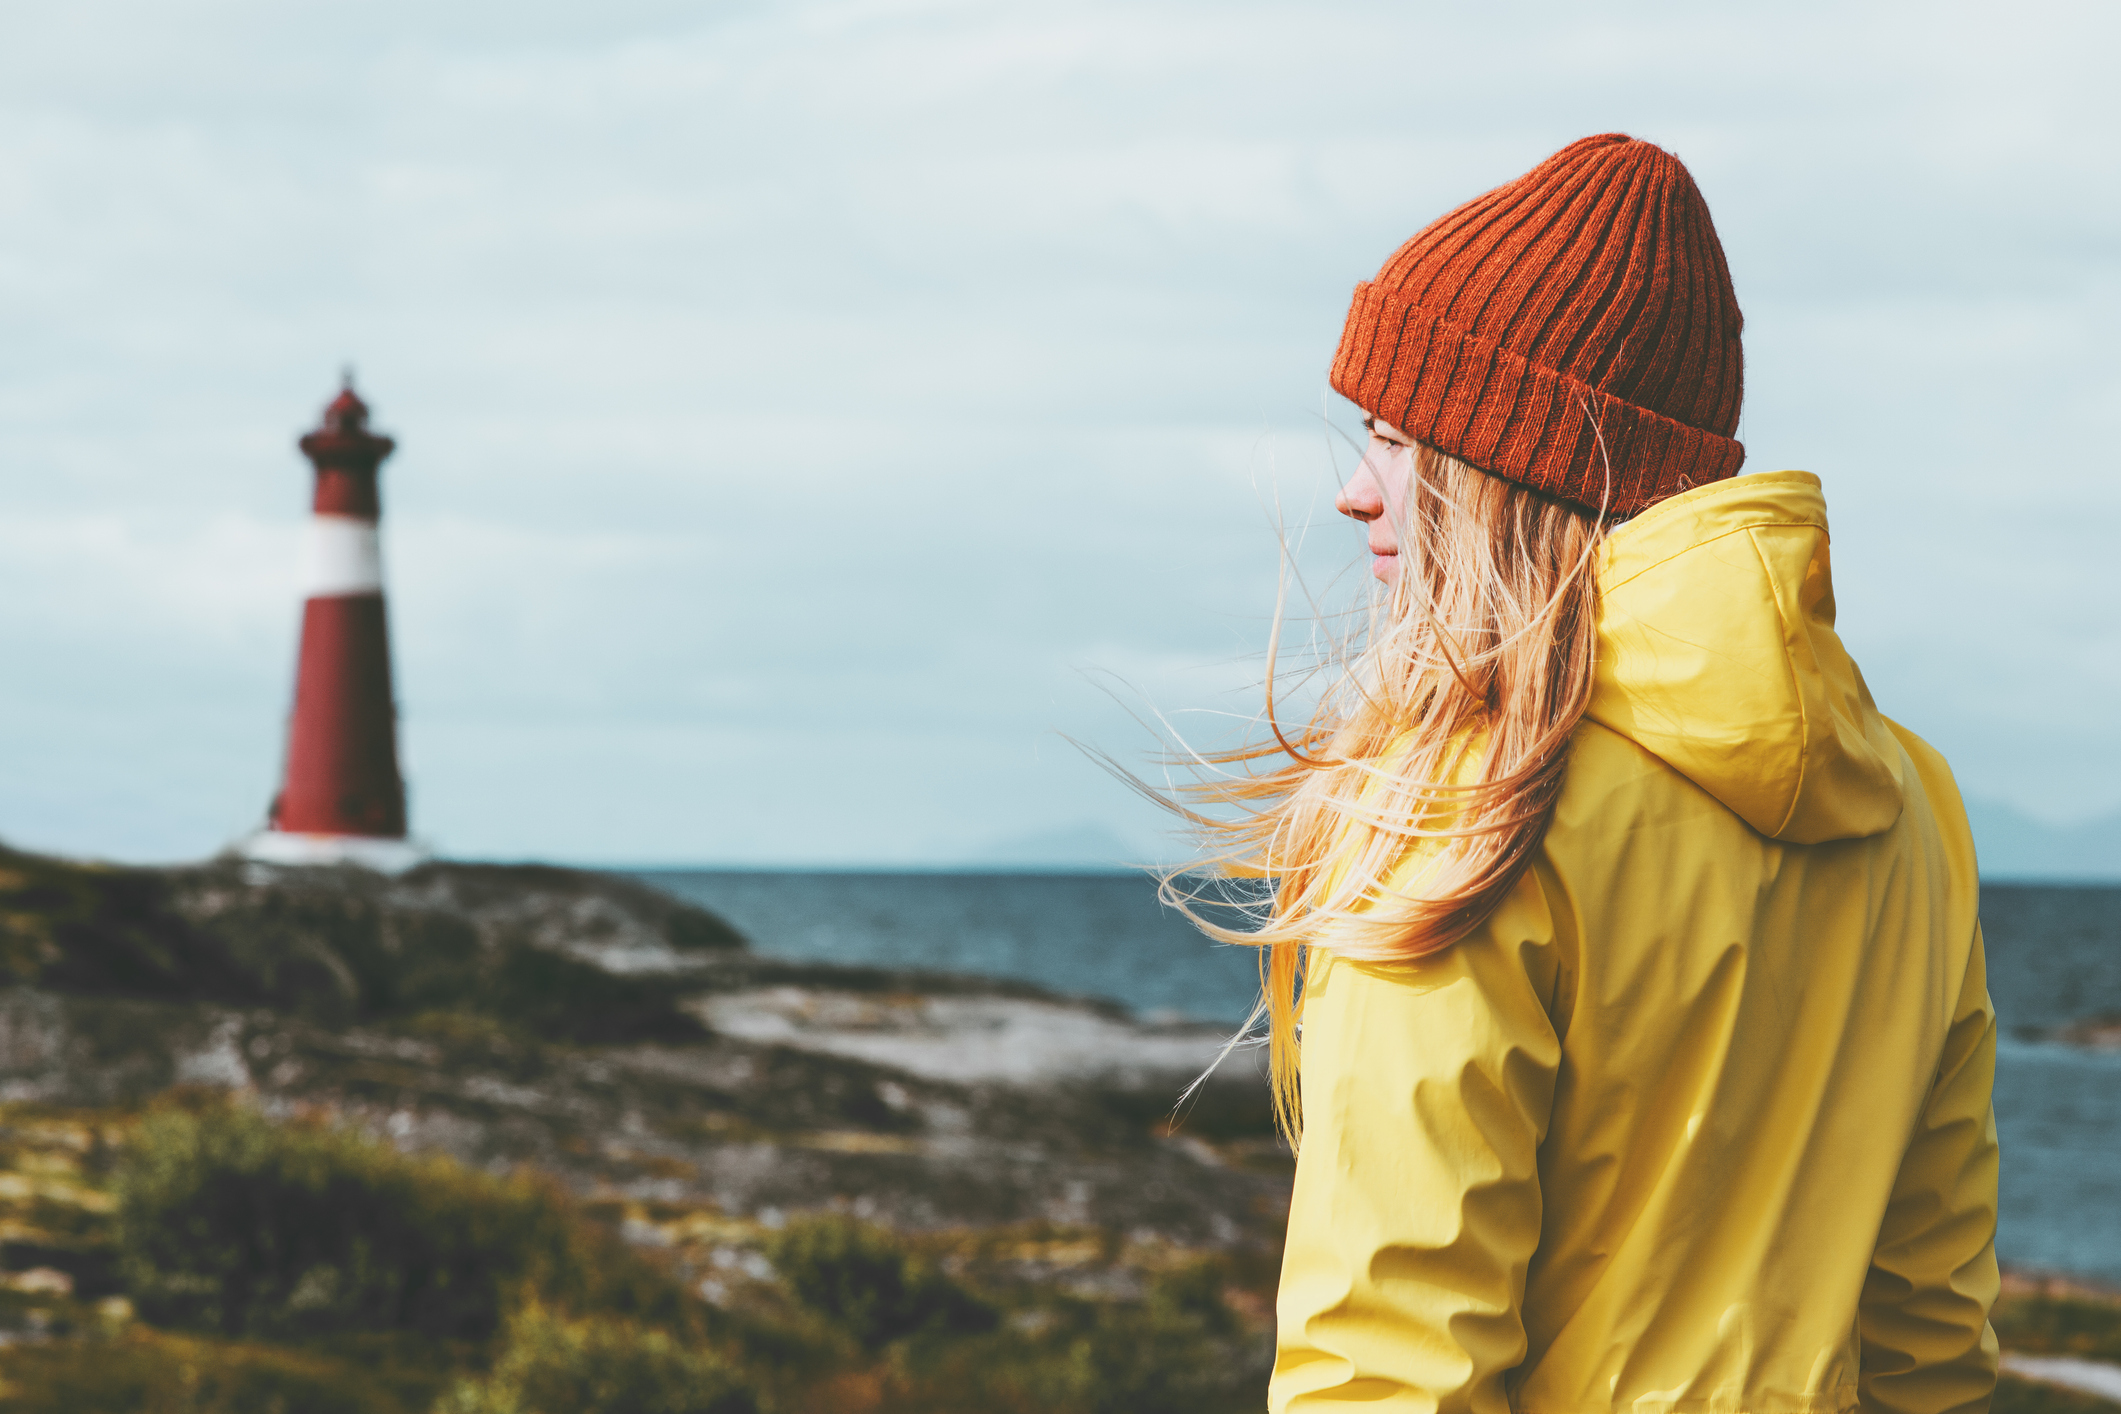 Woman sightseeing lighthouse sea landscape in Norway Travel Lifestyle concept scandinavian vacations outdoor. Blonde girl hair on wind wearing orange hat and yellow raincoat